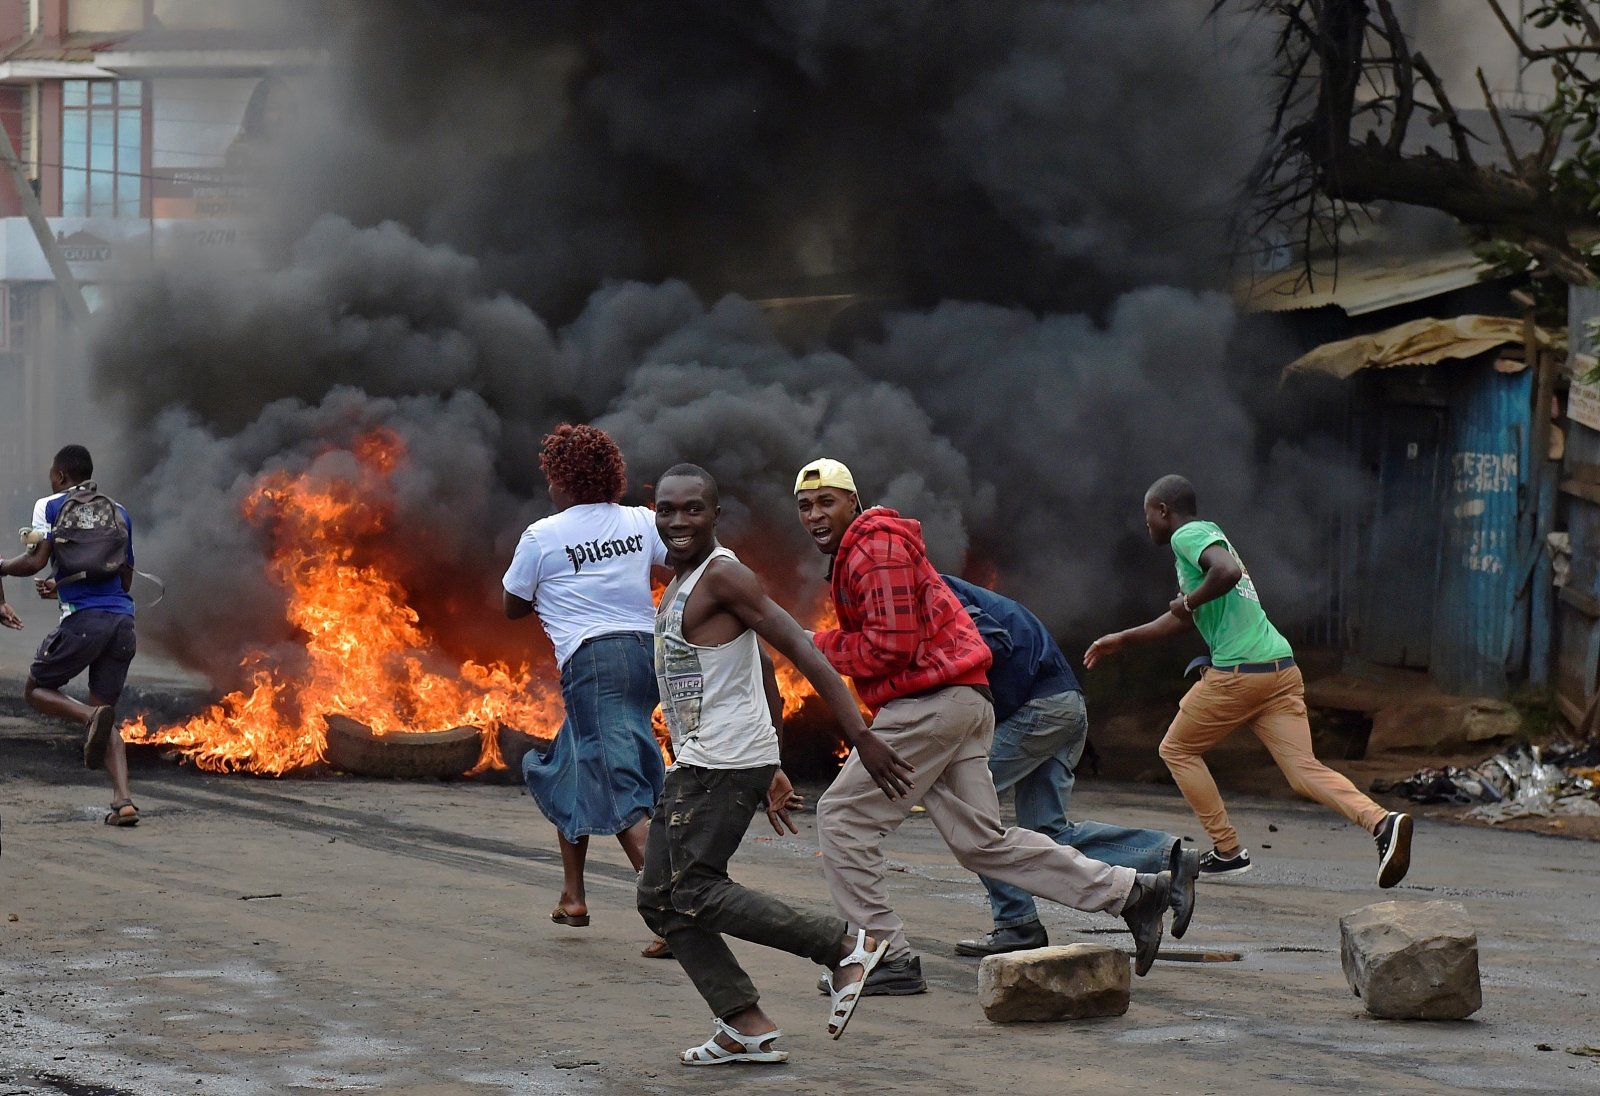 Protests in Kenya